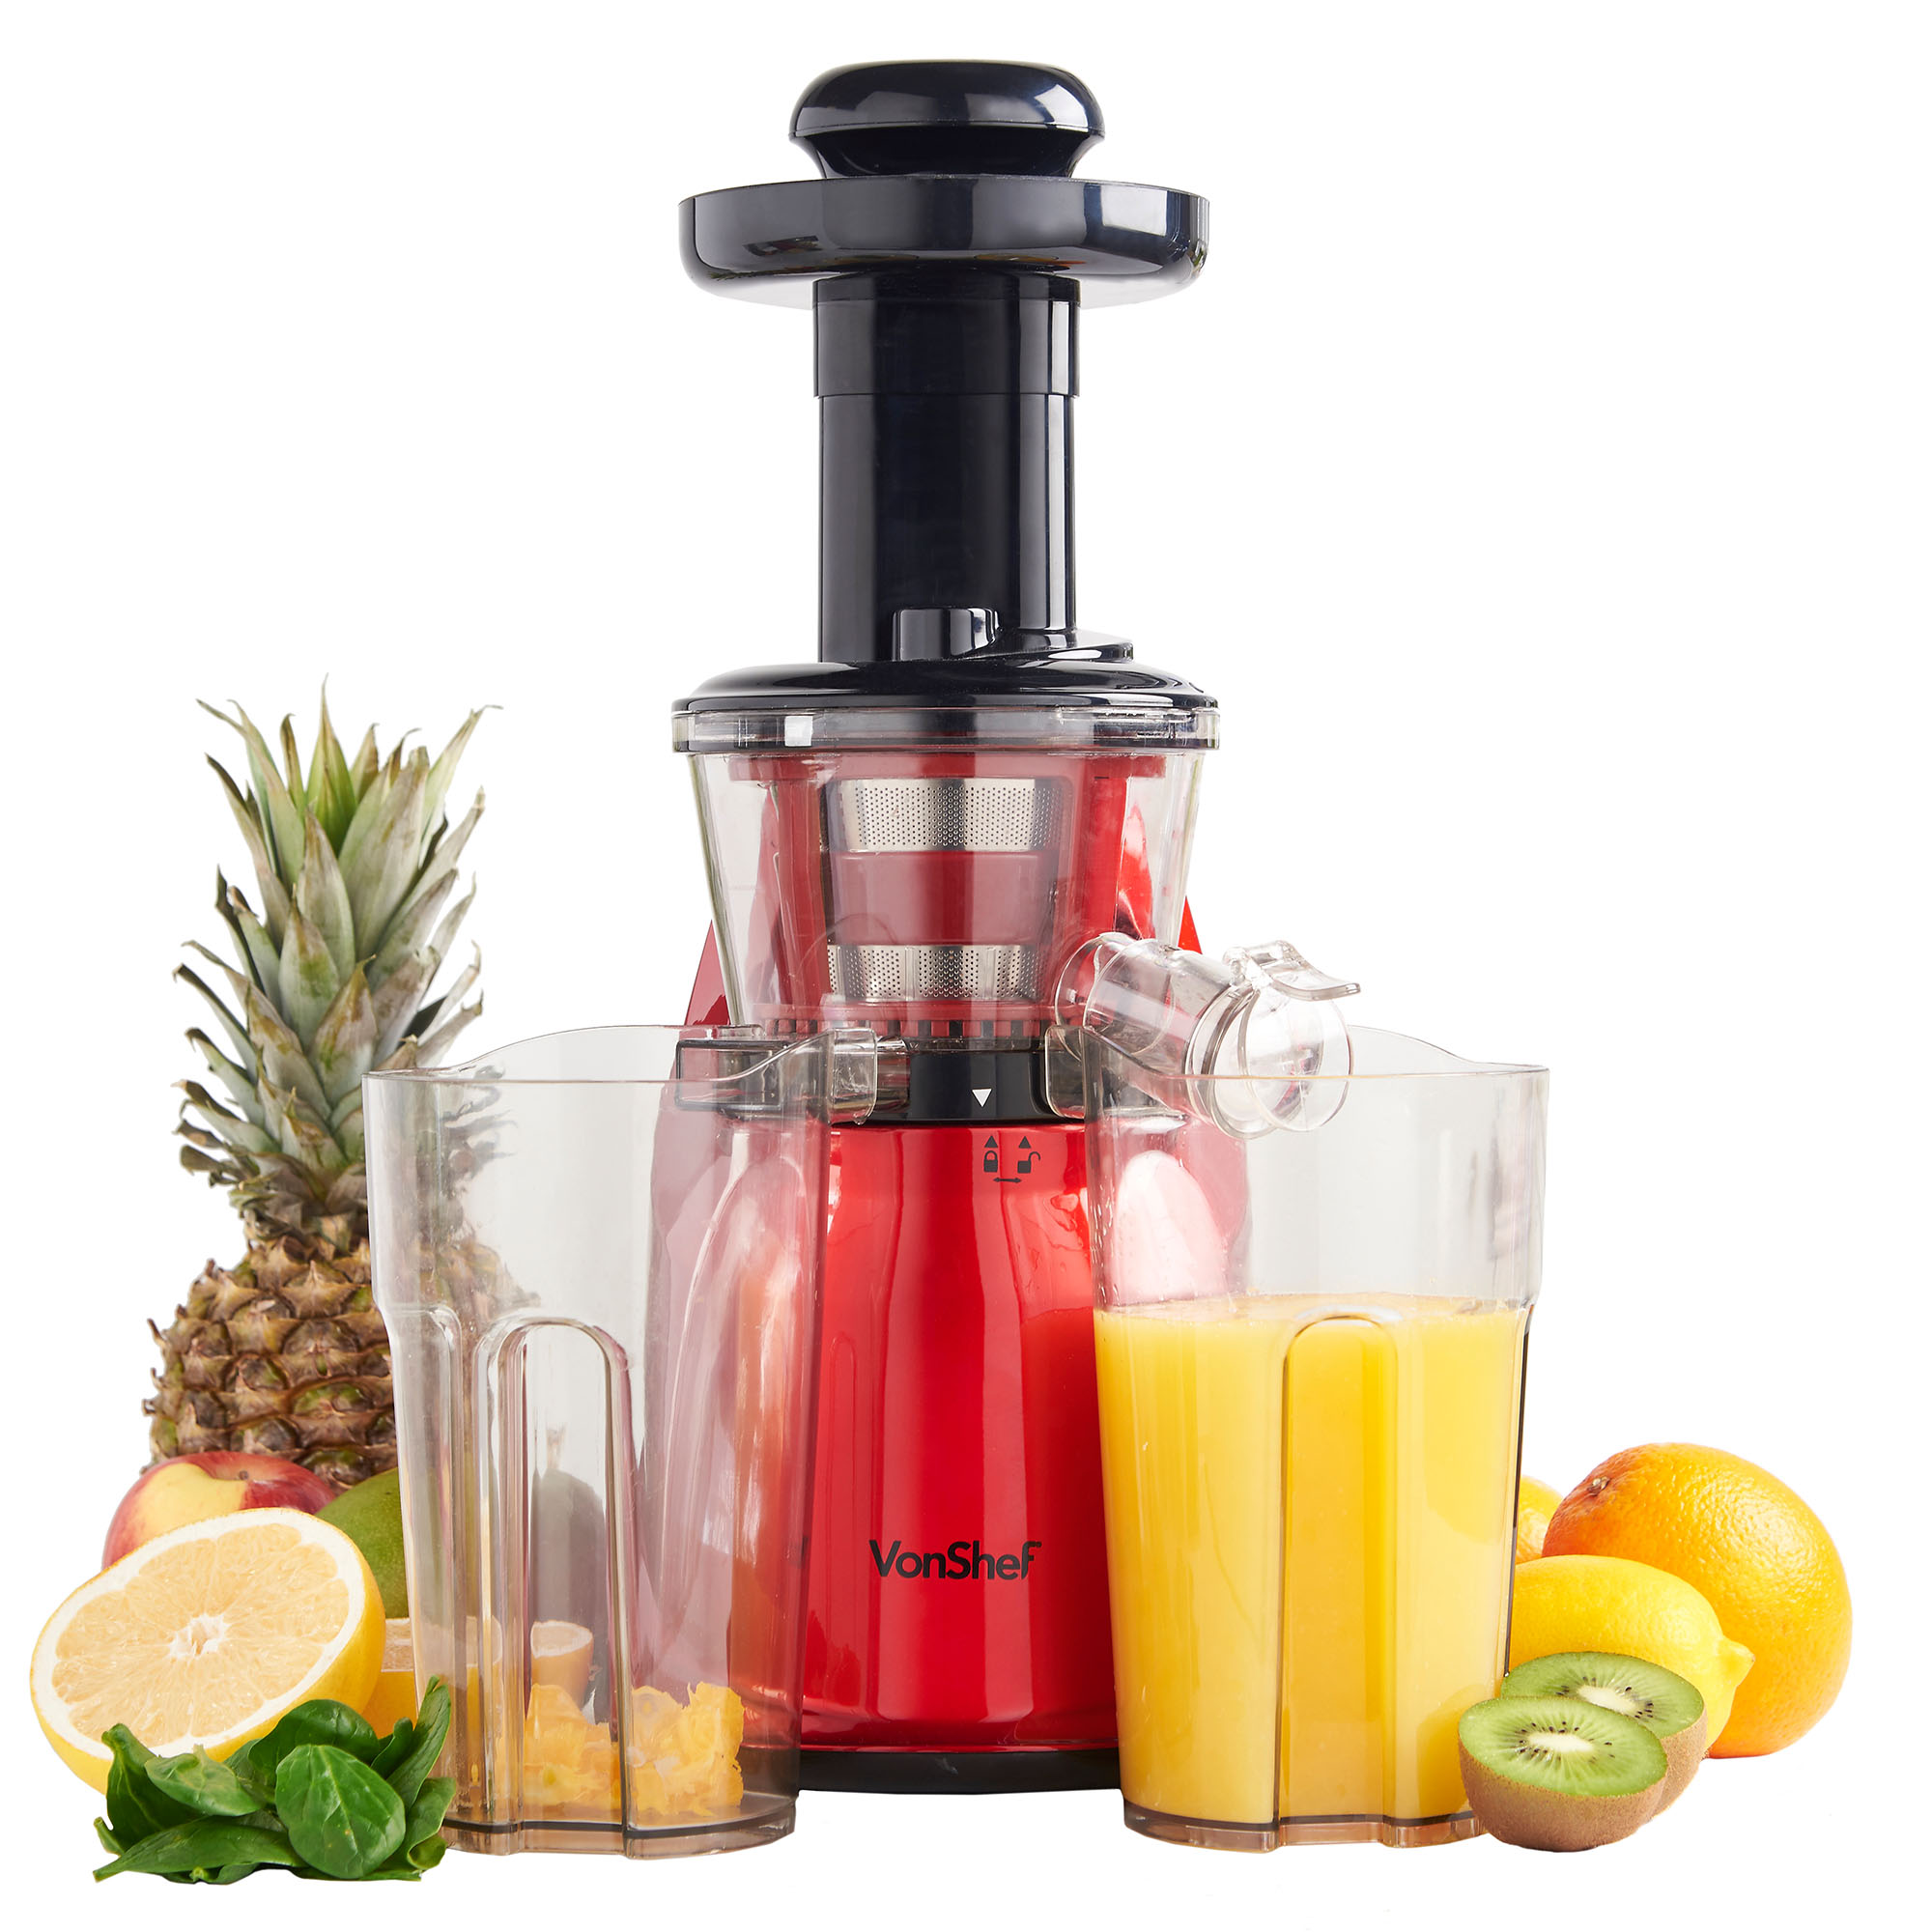 Vonshef Slow Masticating Juicer Review : vonShef Premium Slow Masticating Juicer Electric vegetable Juice Extractor - Red eBay